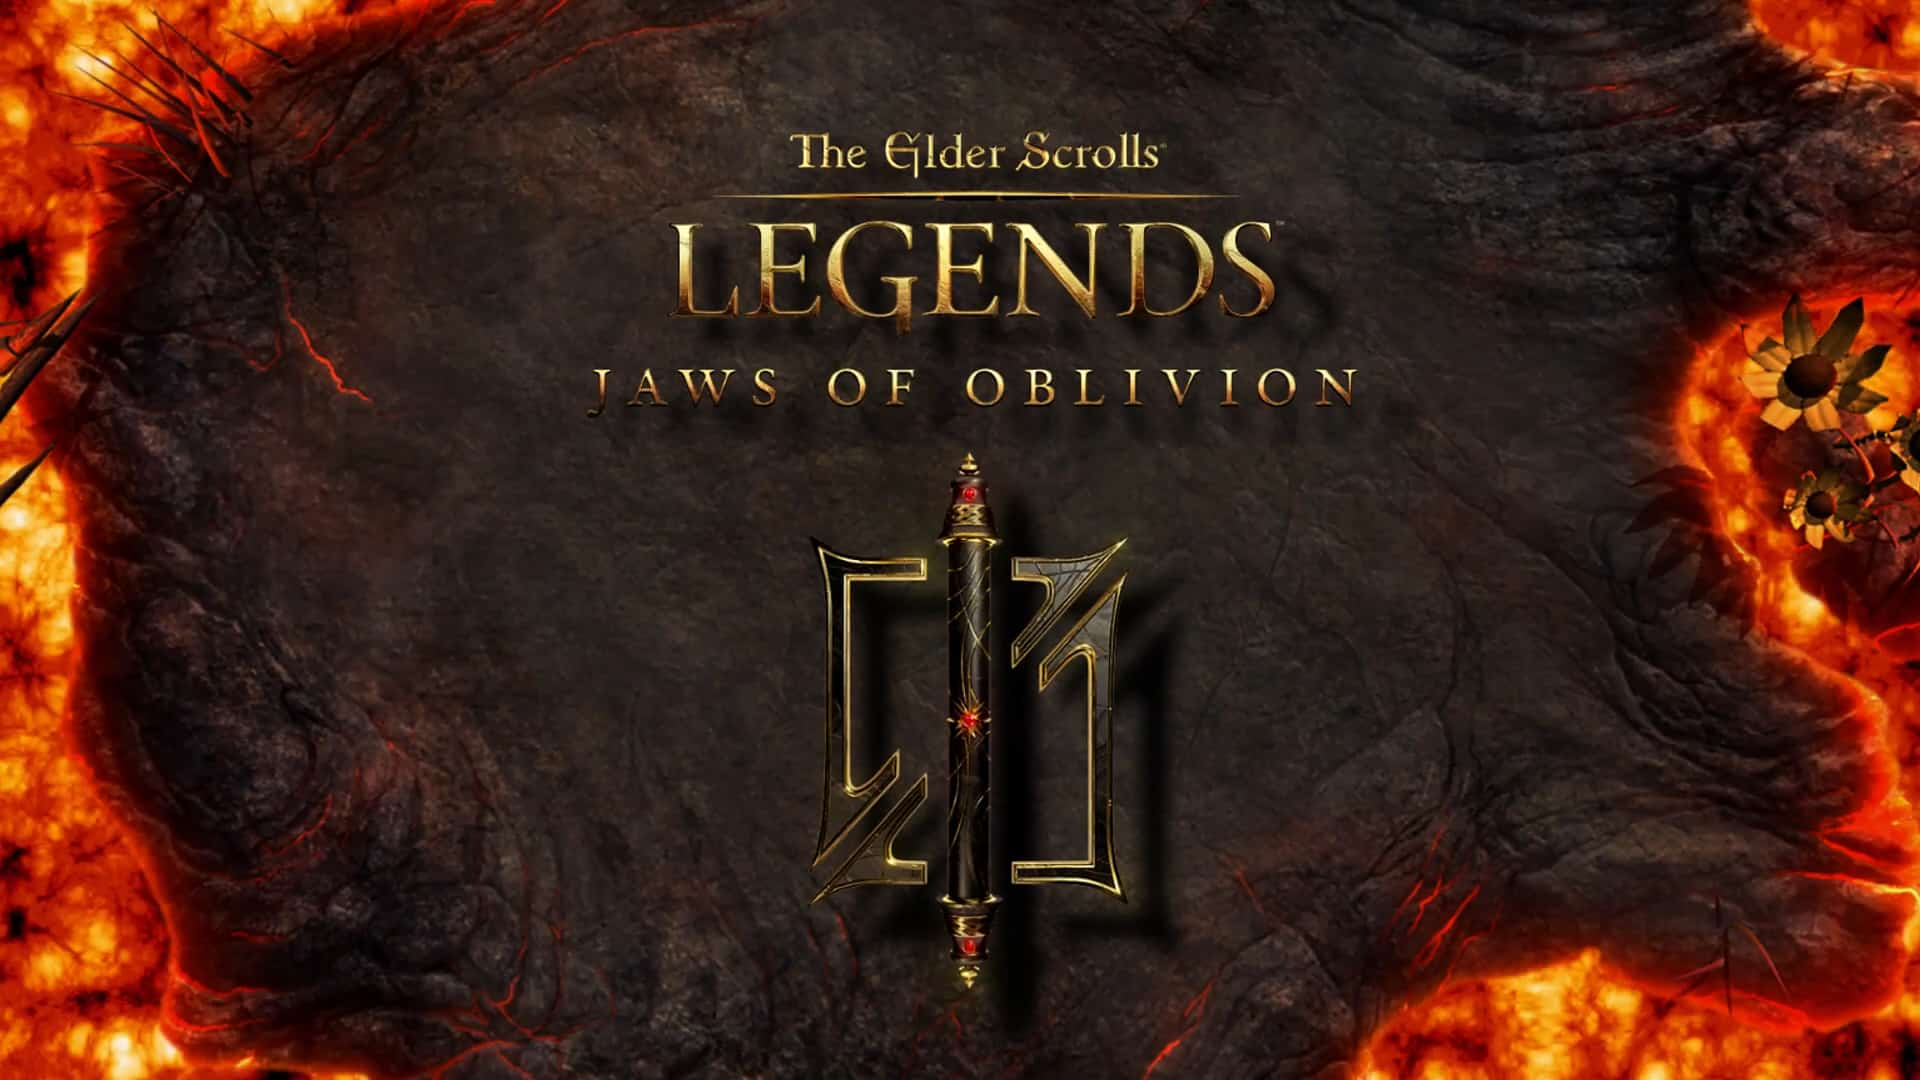 The Elder Scrolls Legends Opens The Jaws Of Oblivion In Latest